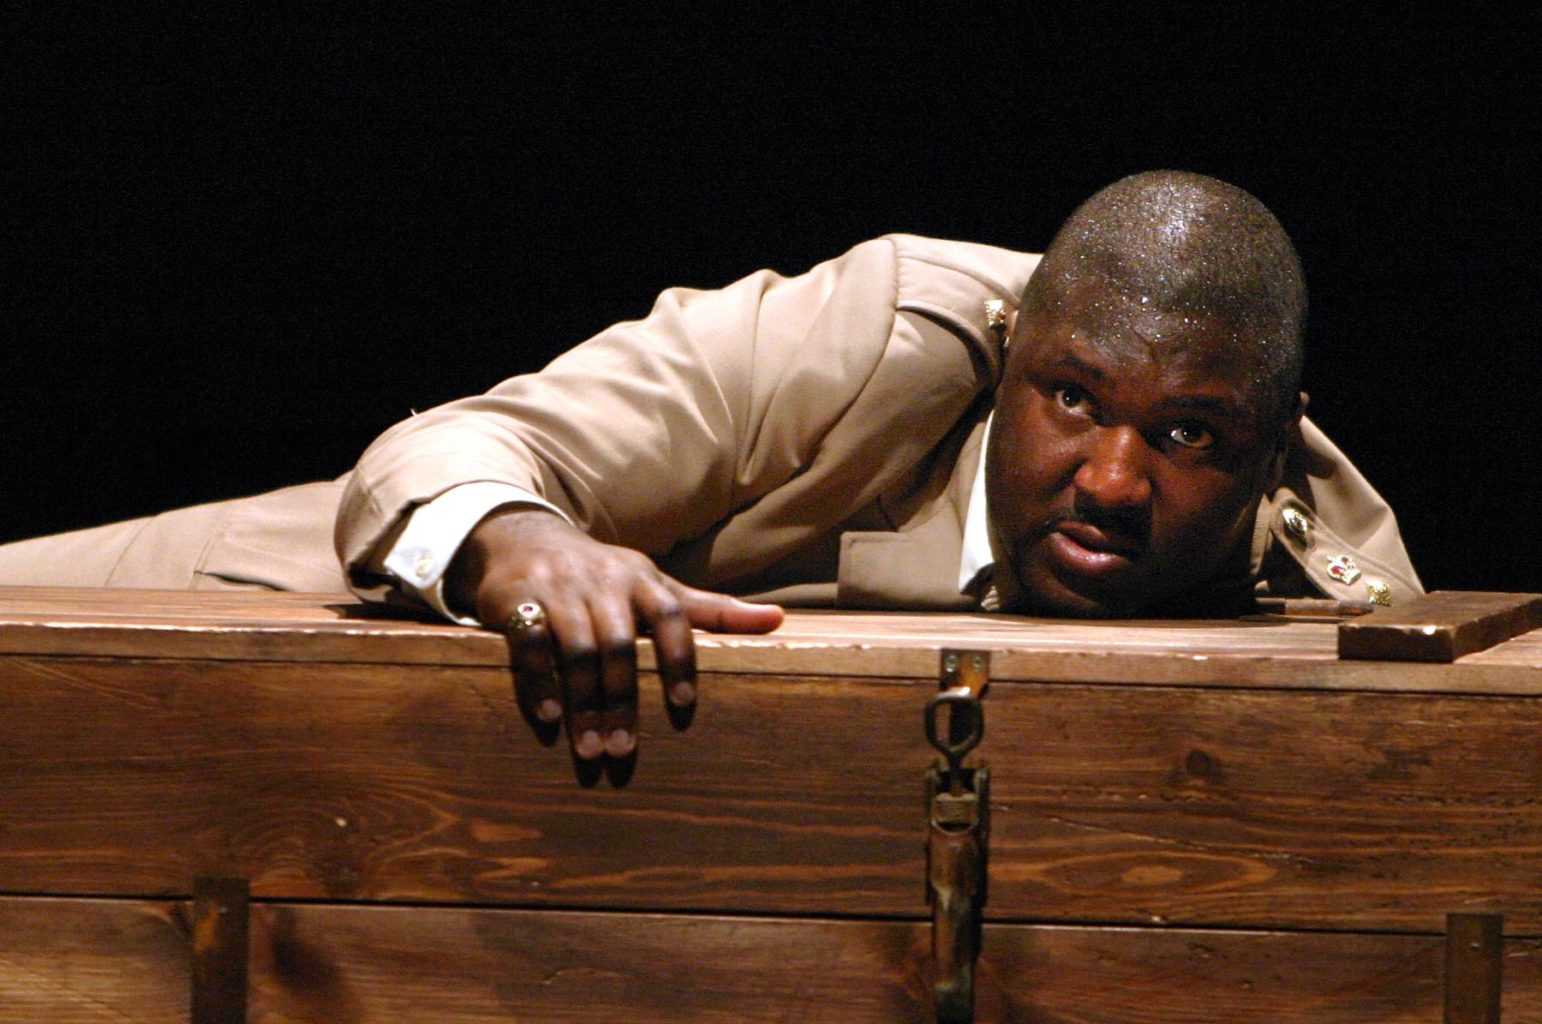 Nonso Anozie's Othello tour diary written in 2004